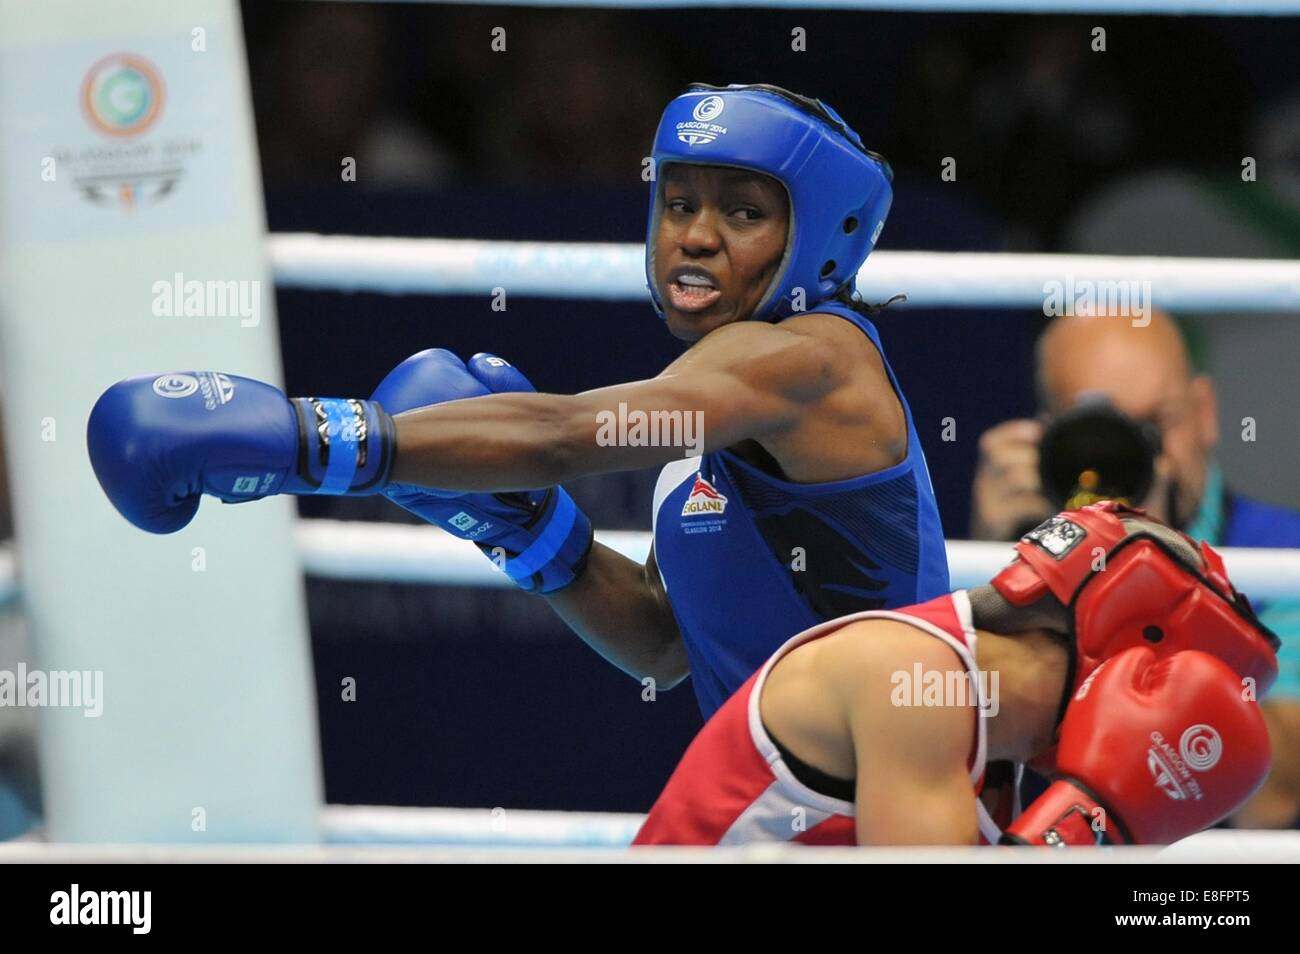 Nicola Adams (ENG, blue) and Mandy Bujold (CAN). Womens 48-51Kg. Boxing - The SSE Hydro - Glasgow - UK - 01/08/2014 - Stock Image